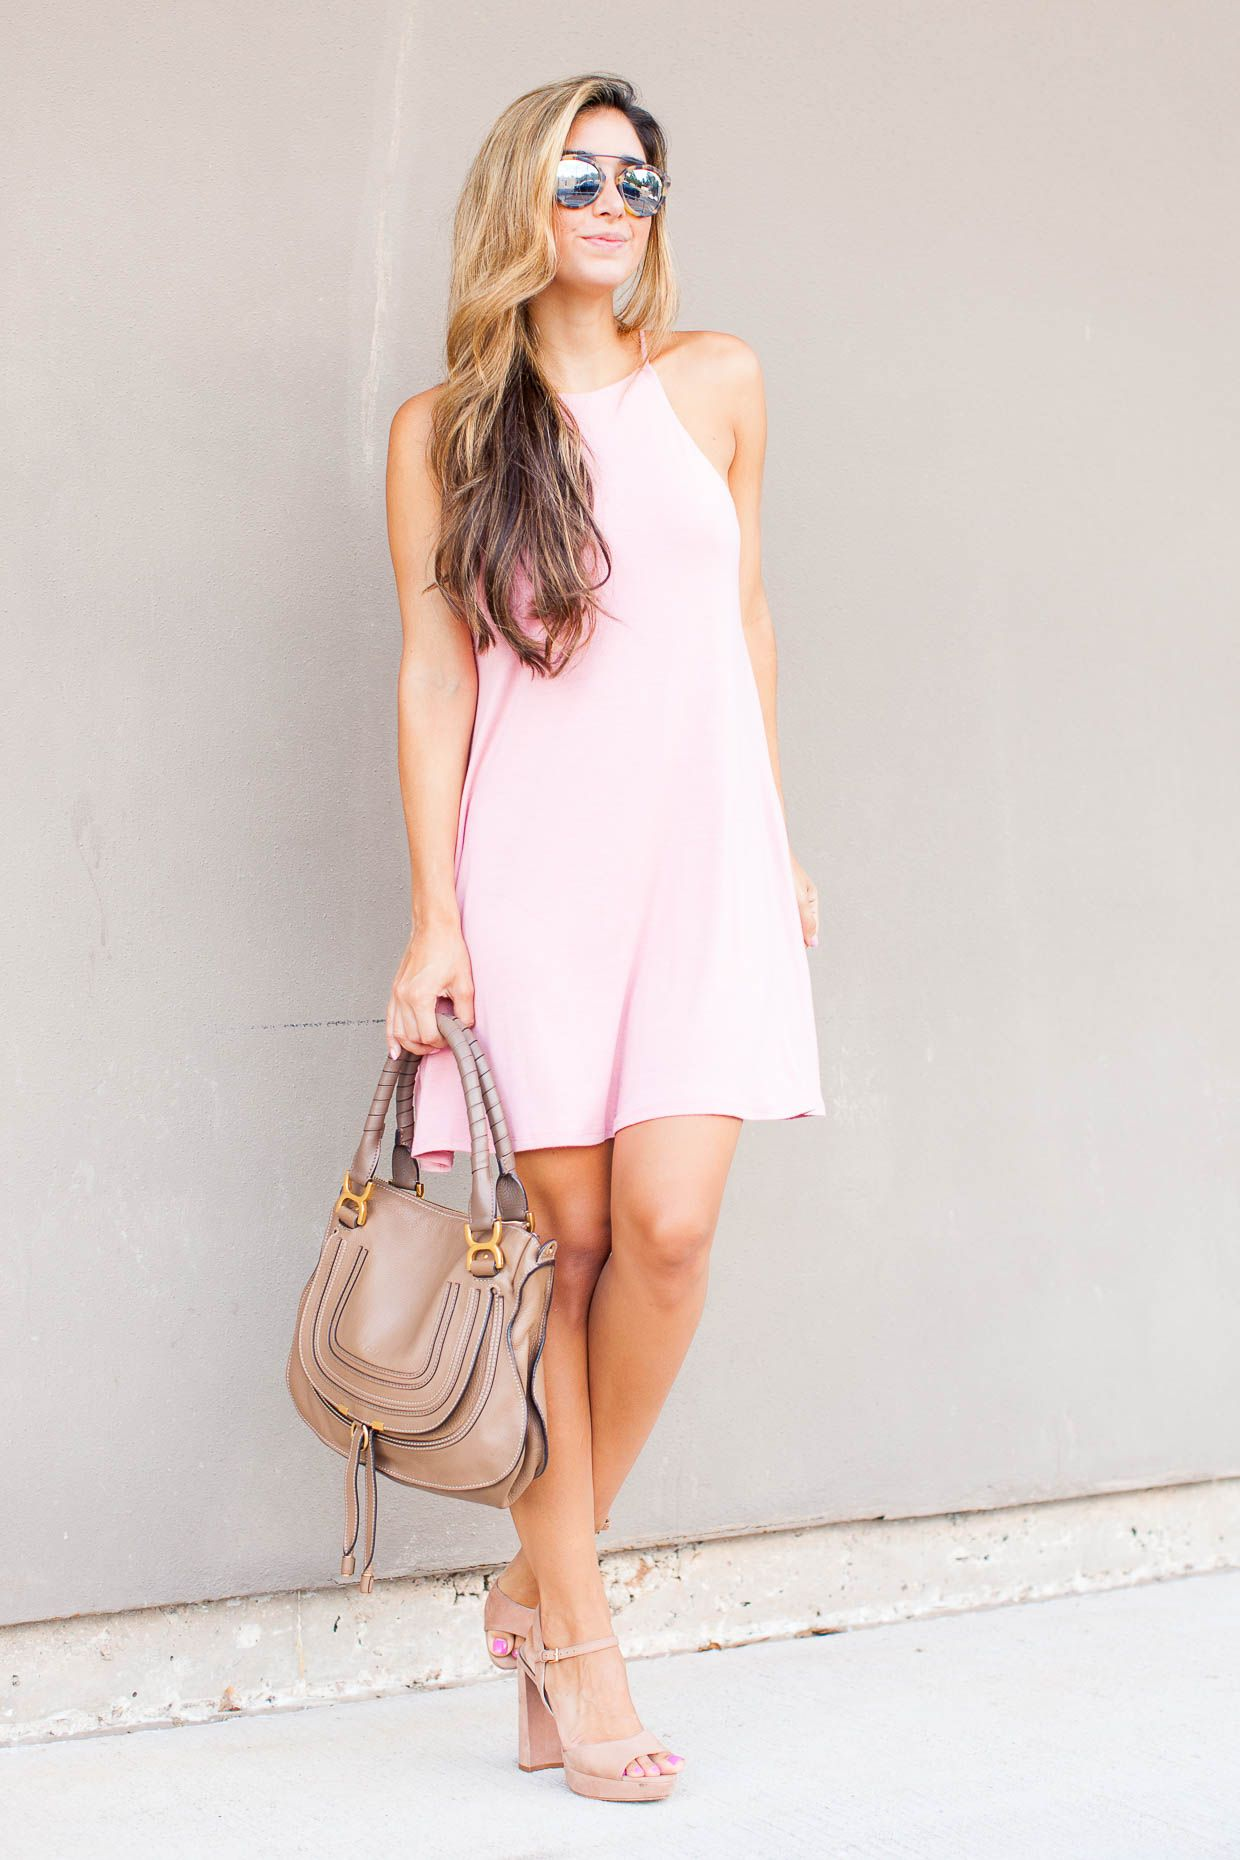 A Little Everyday Dress - The Darling Detail, Jessi Afshin. ♡ SL